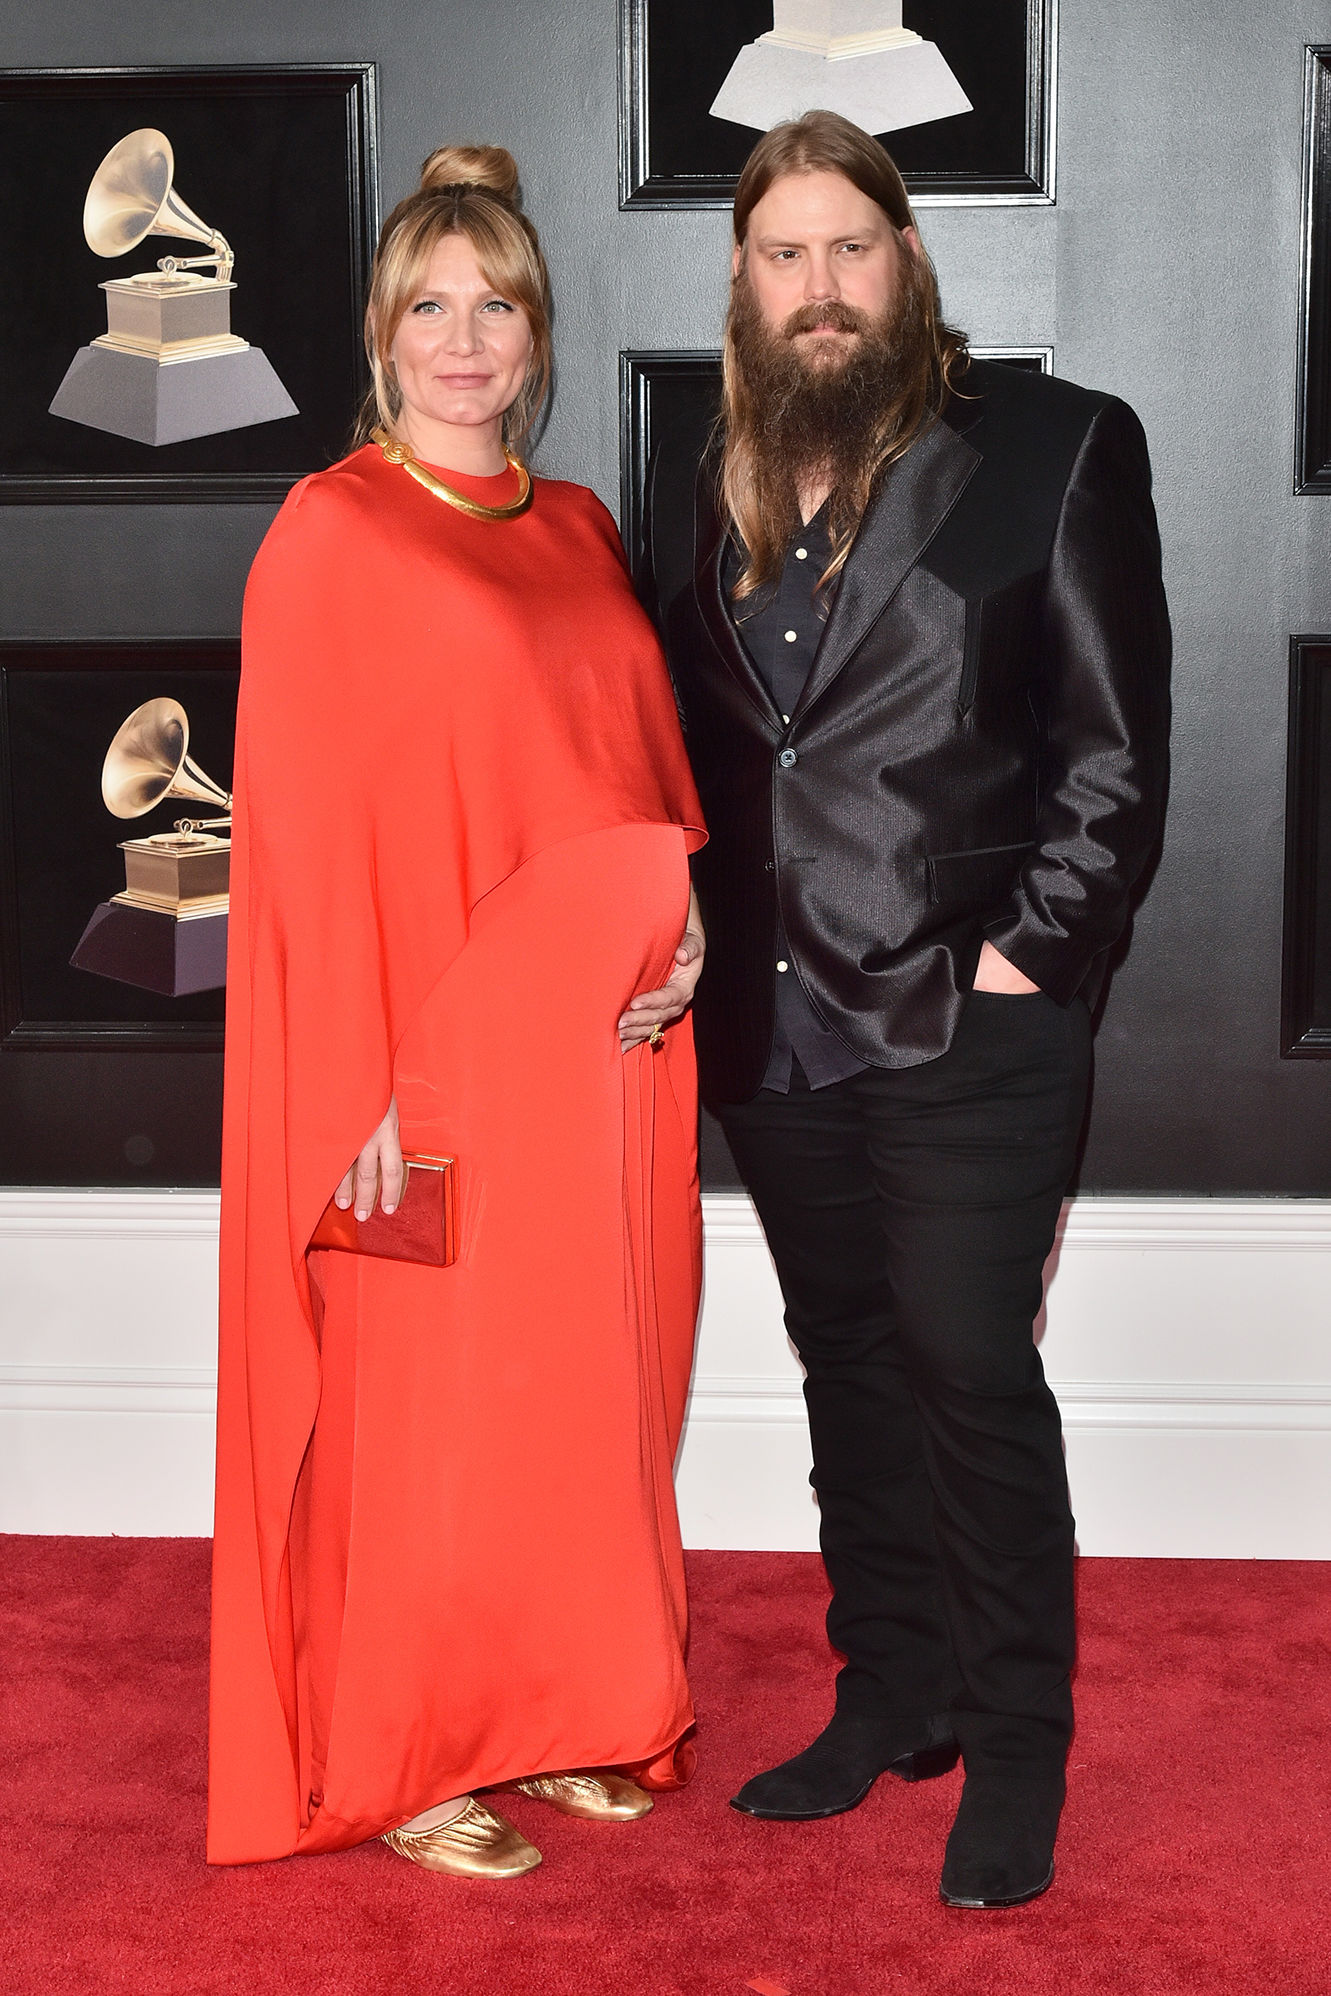 Chris Stapleton Welcomes Twin Boys with Wife Morgane — and Reba McEntire Announces the Birth!